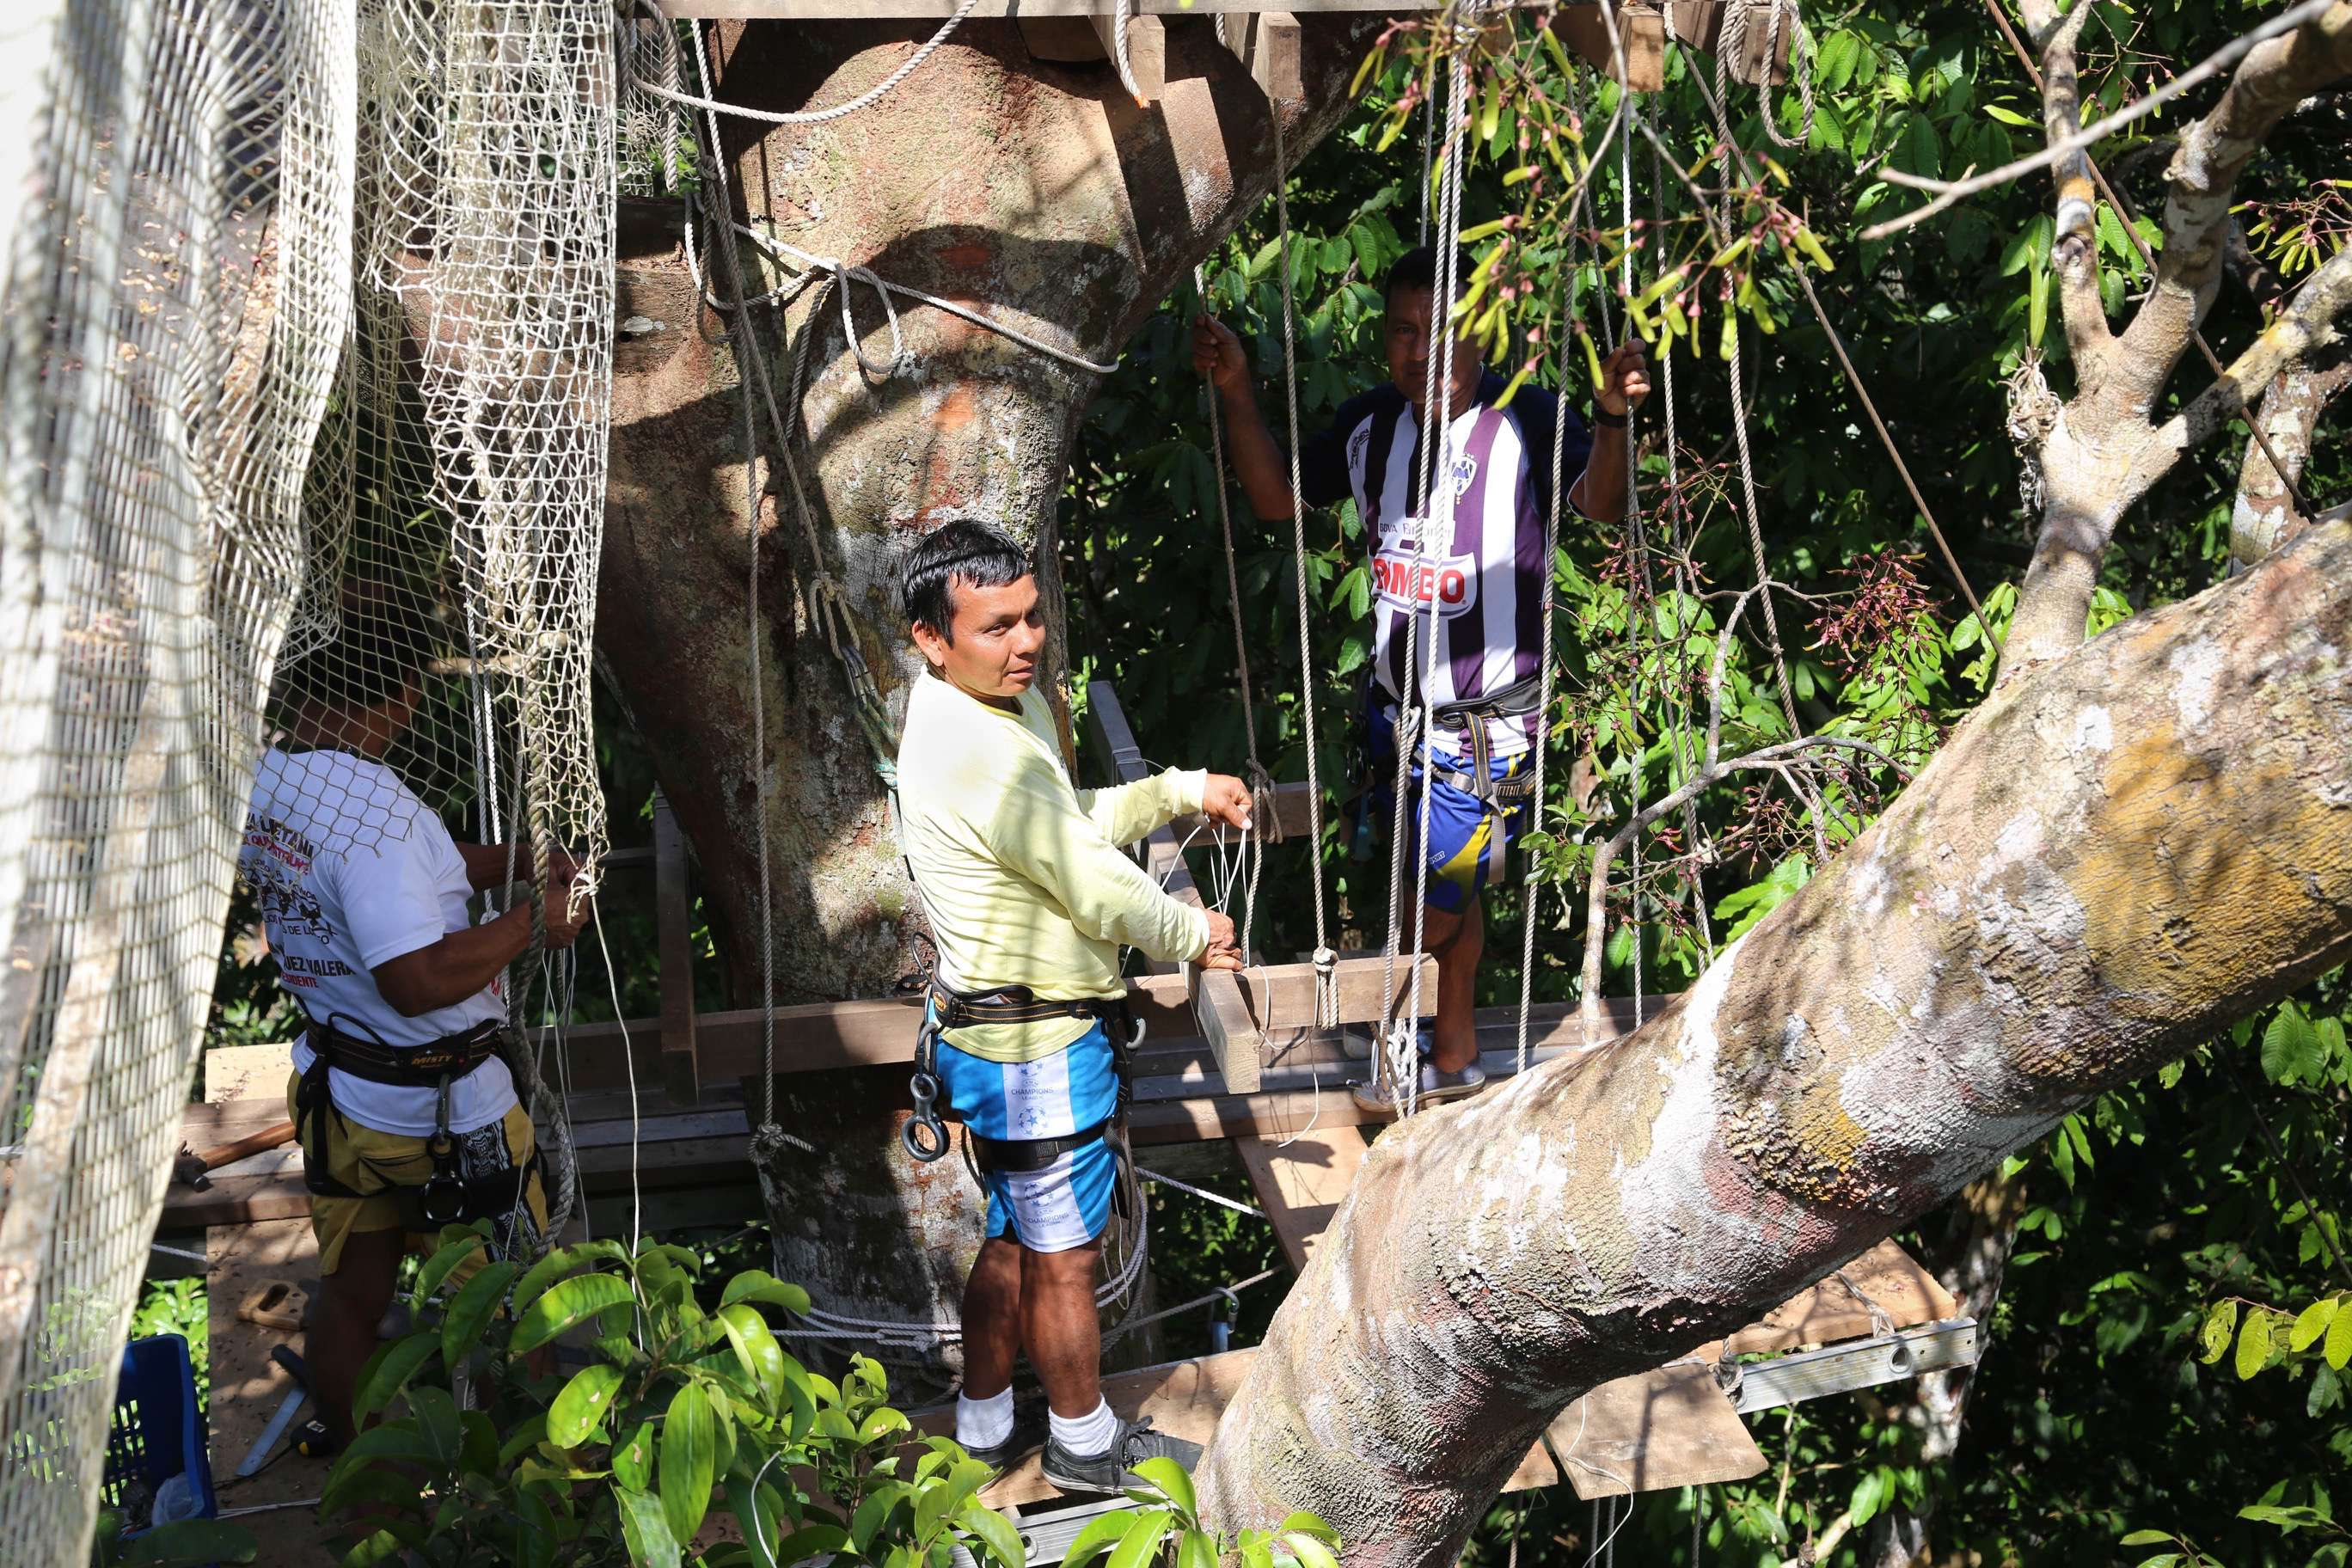 Amazon jungle conditions require that maintenance crews continually check on the walkways to keep them safe.